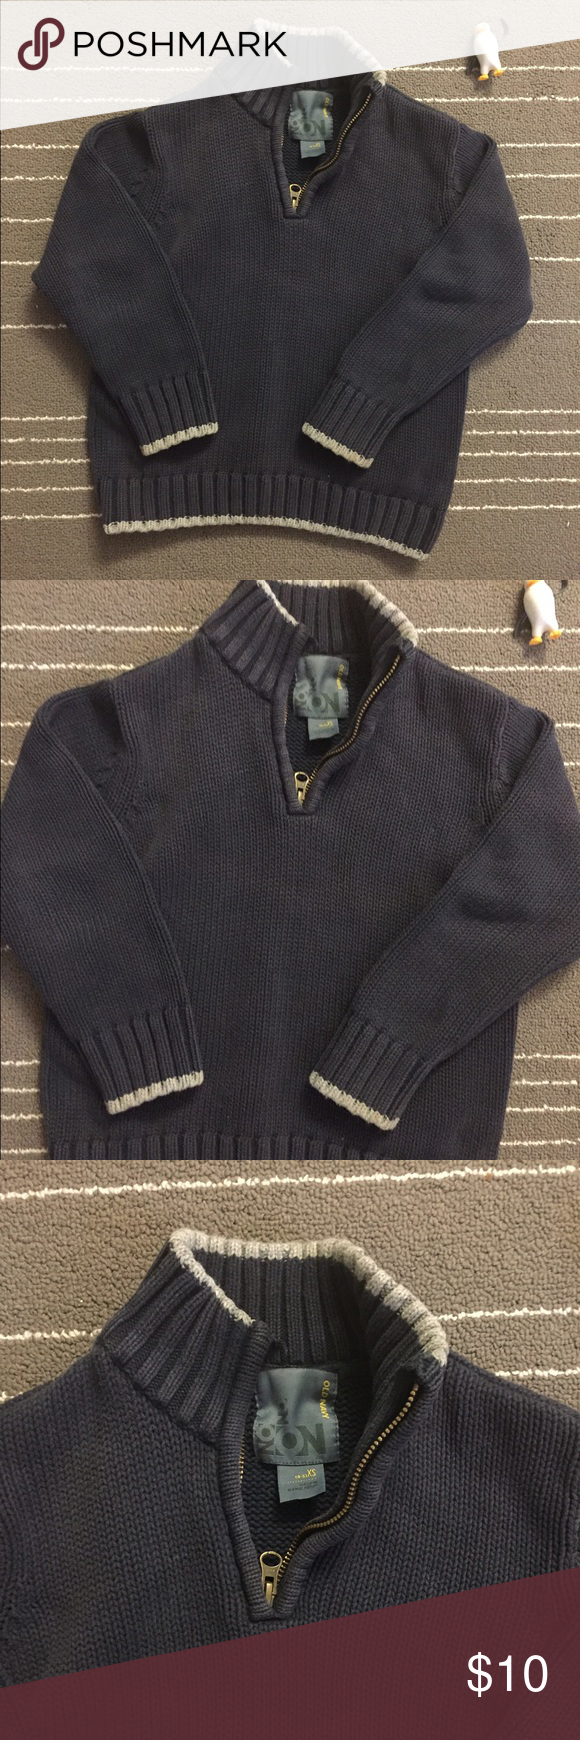 Old navy Kid boy sweater in navy color | Kids boys, Navy colour ...